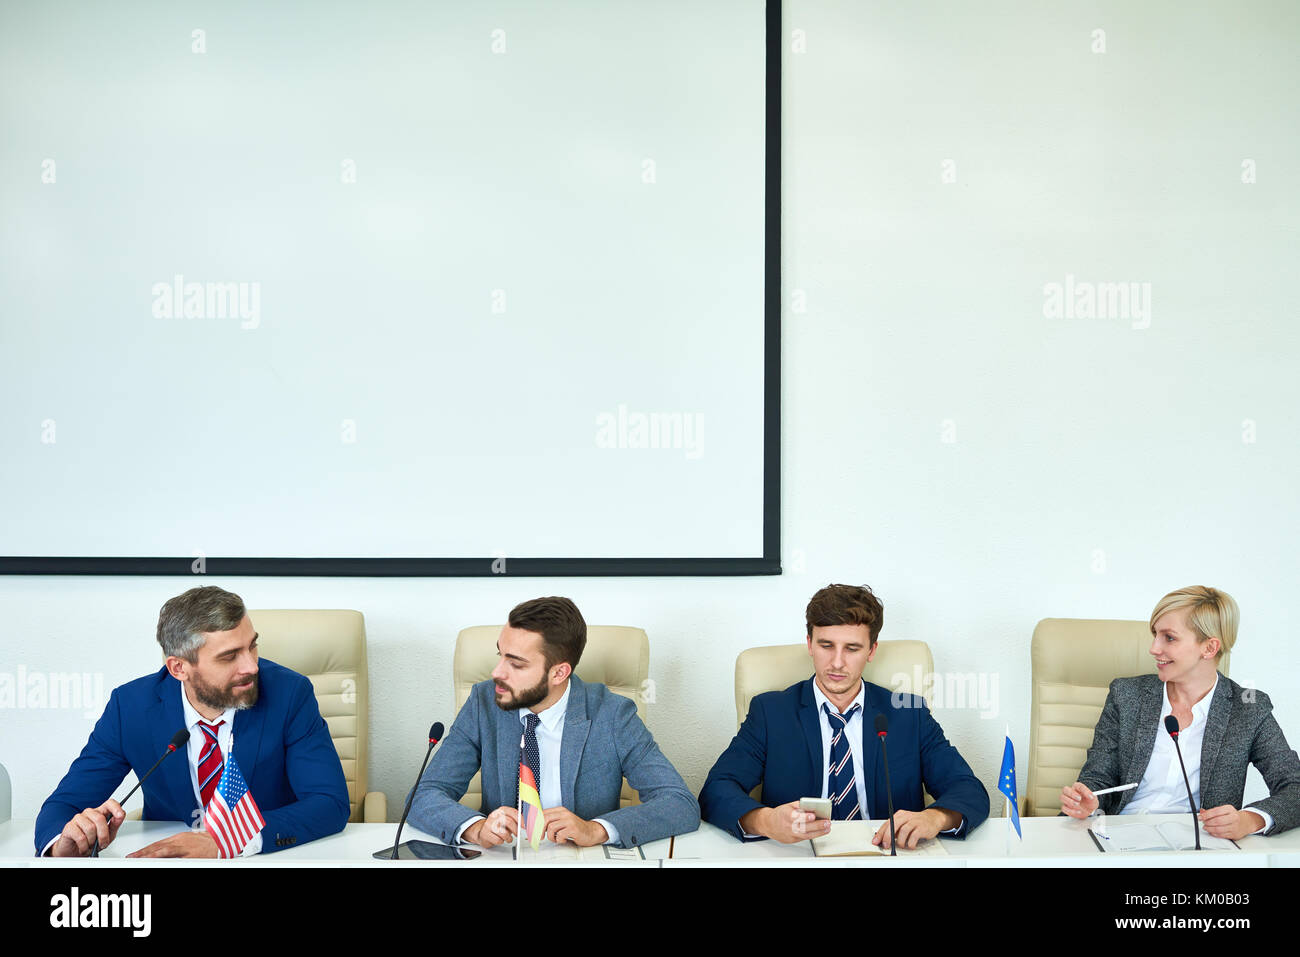 Members of International Conference - Stock Image